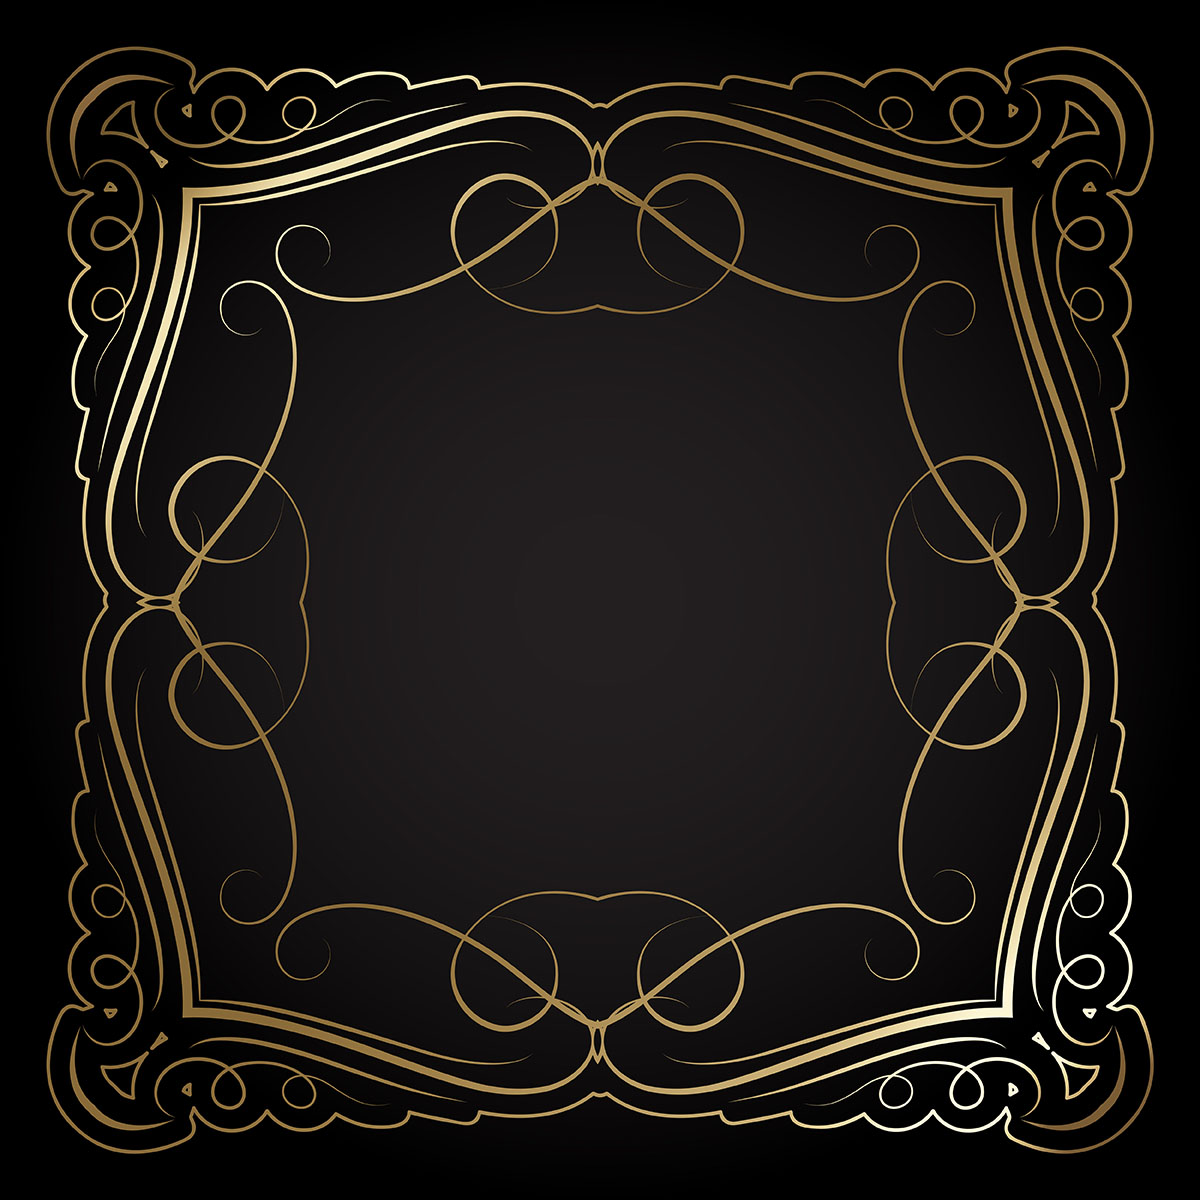 Gold Borders Free Vector Art - (11816 Free Downloads)